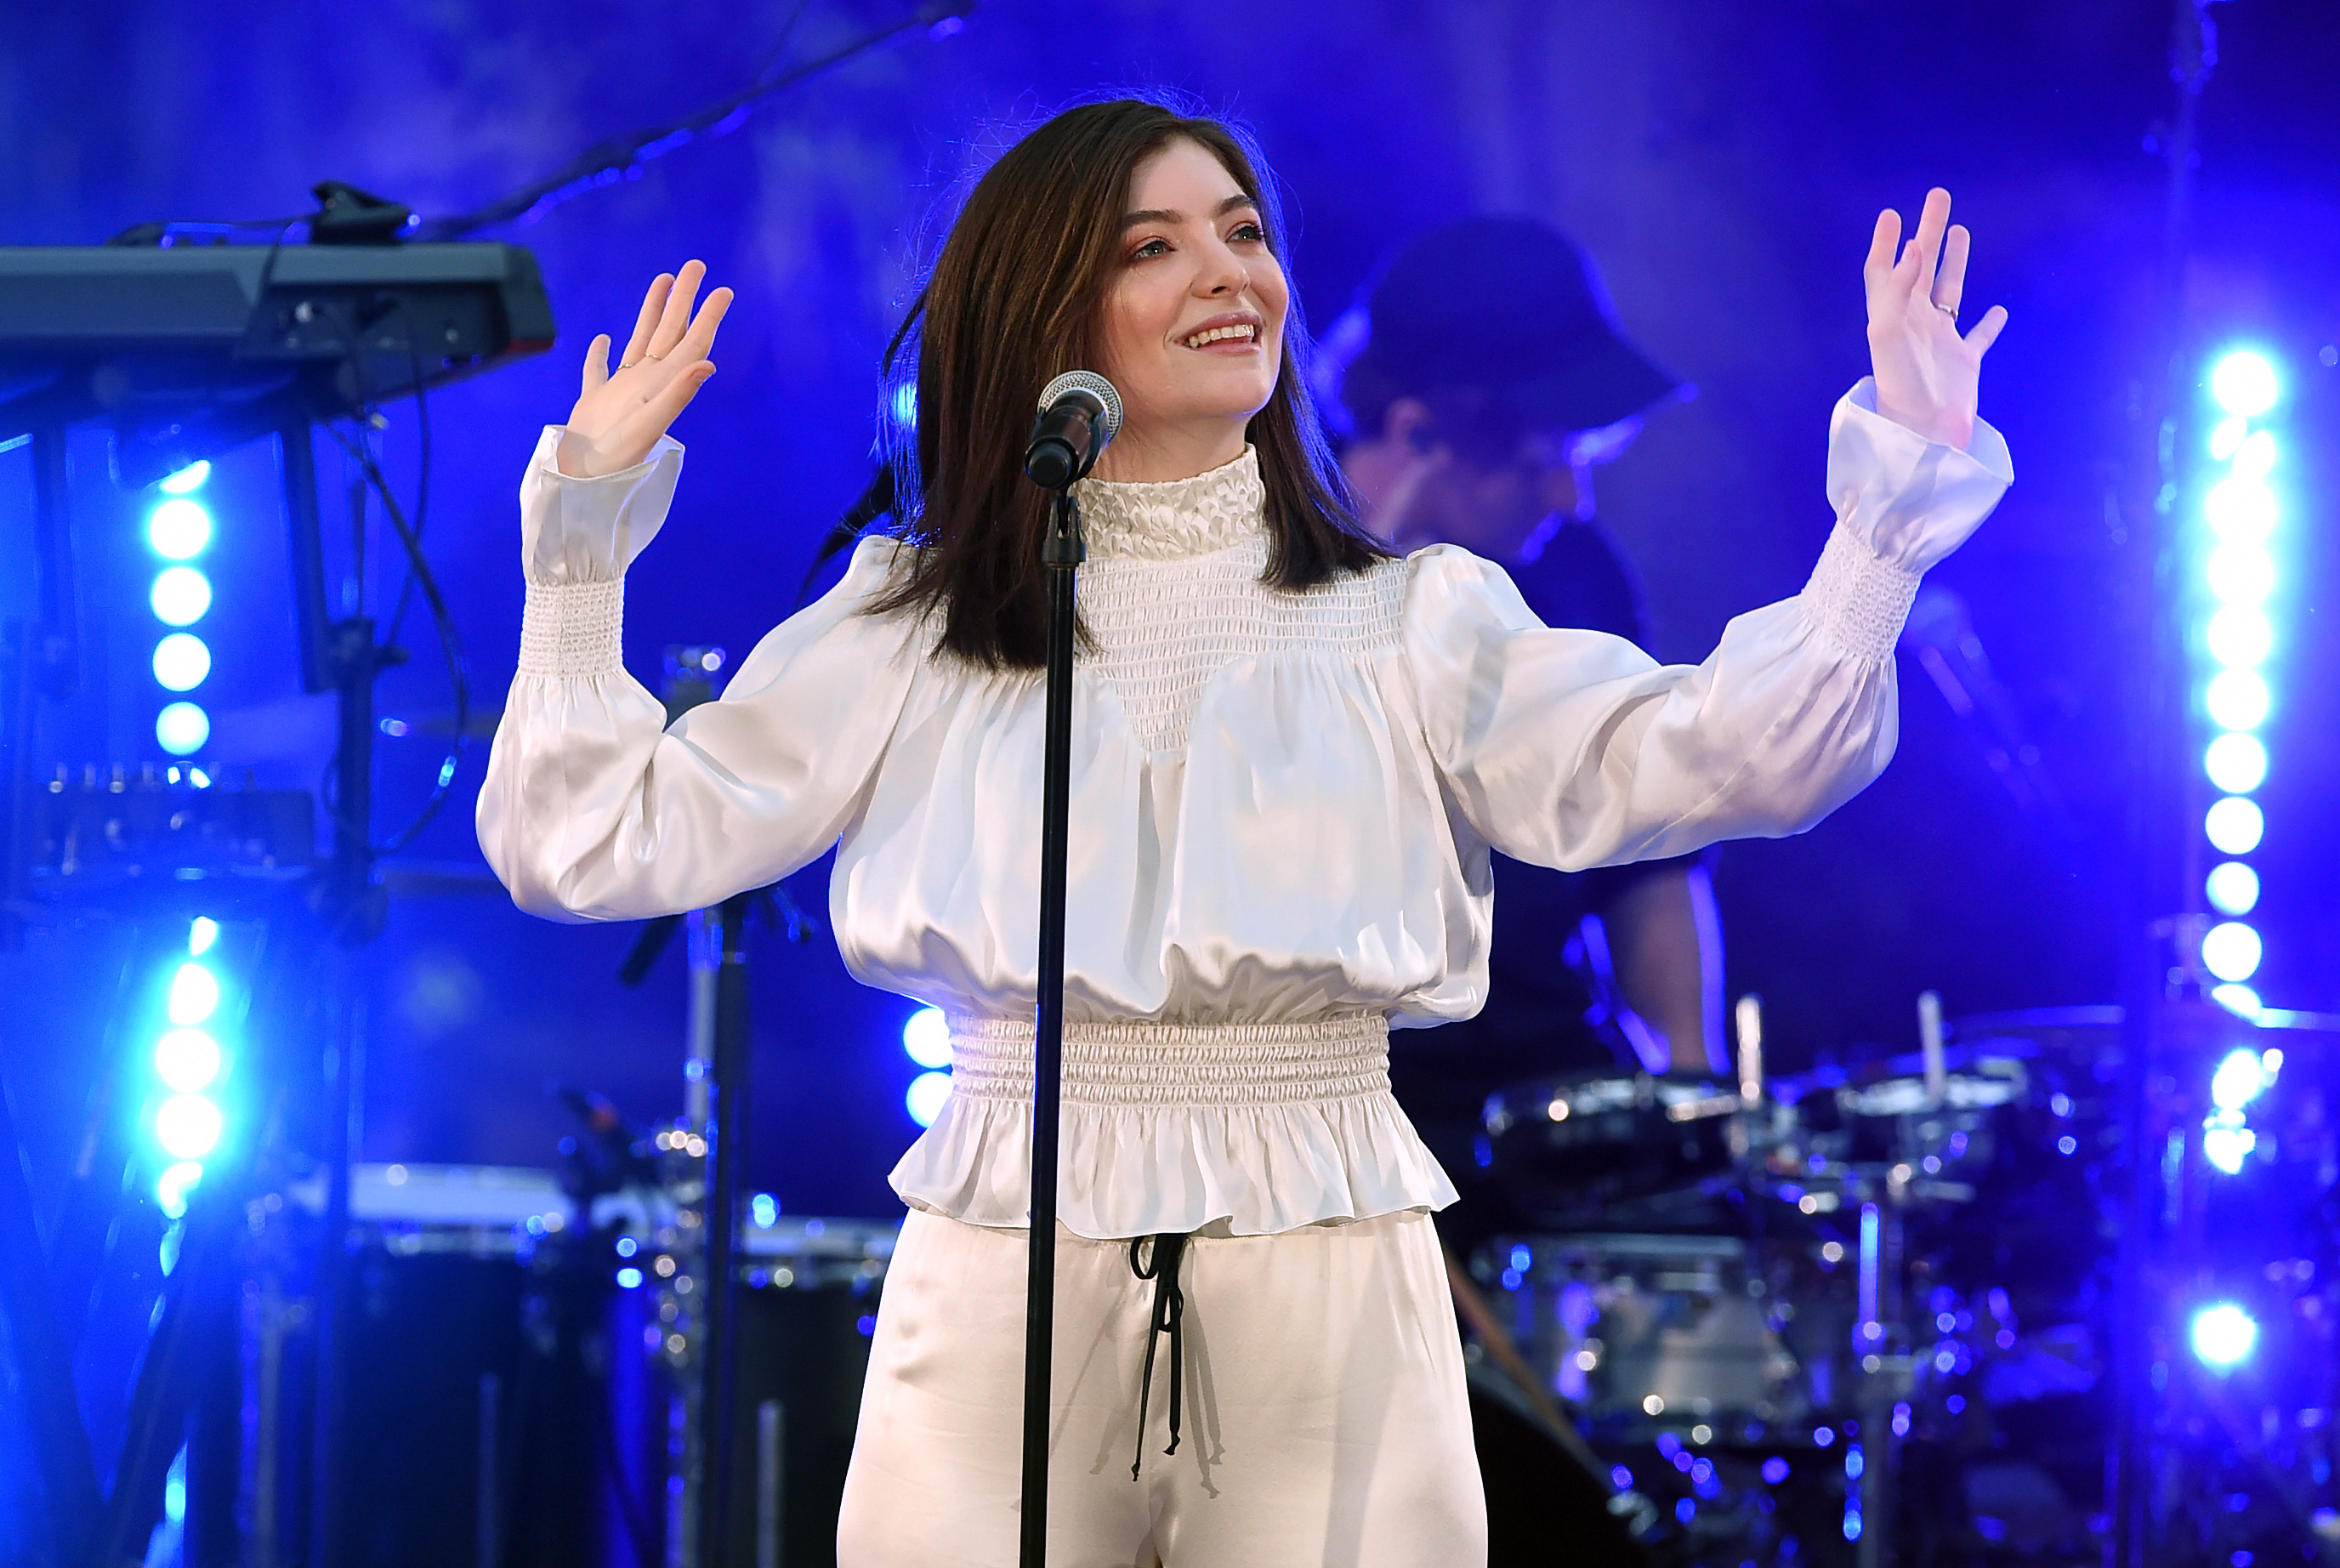 Lorde performs during the iHeartRadio Secret Sessions by AT&T at the magical Houdini Estate in Los Angeles on Aug. 29, 2017.